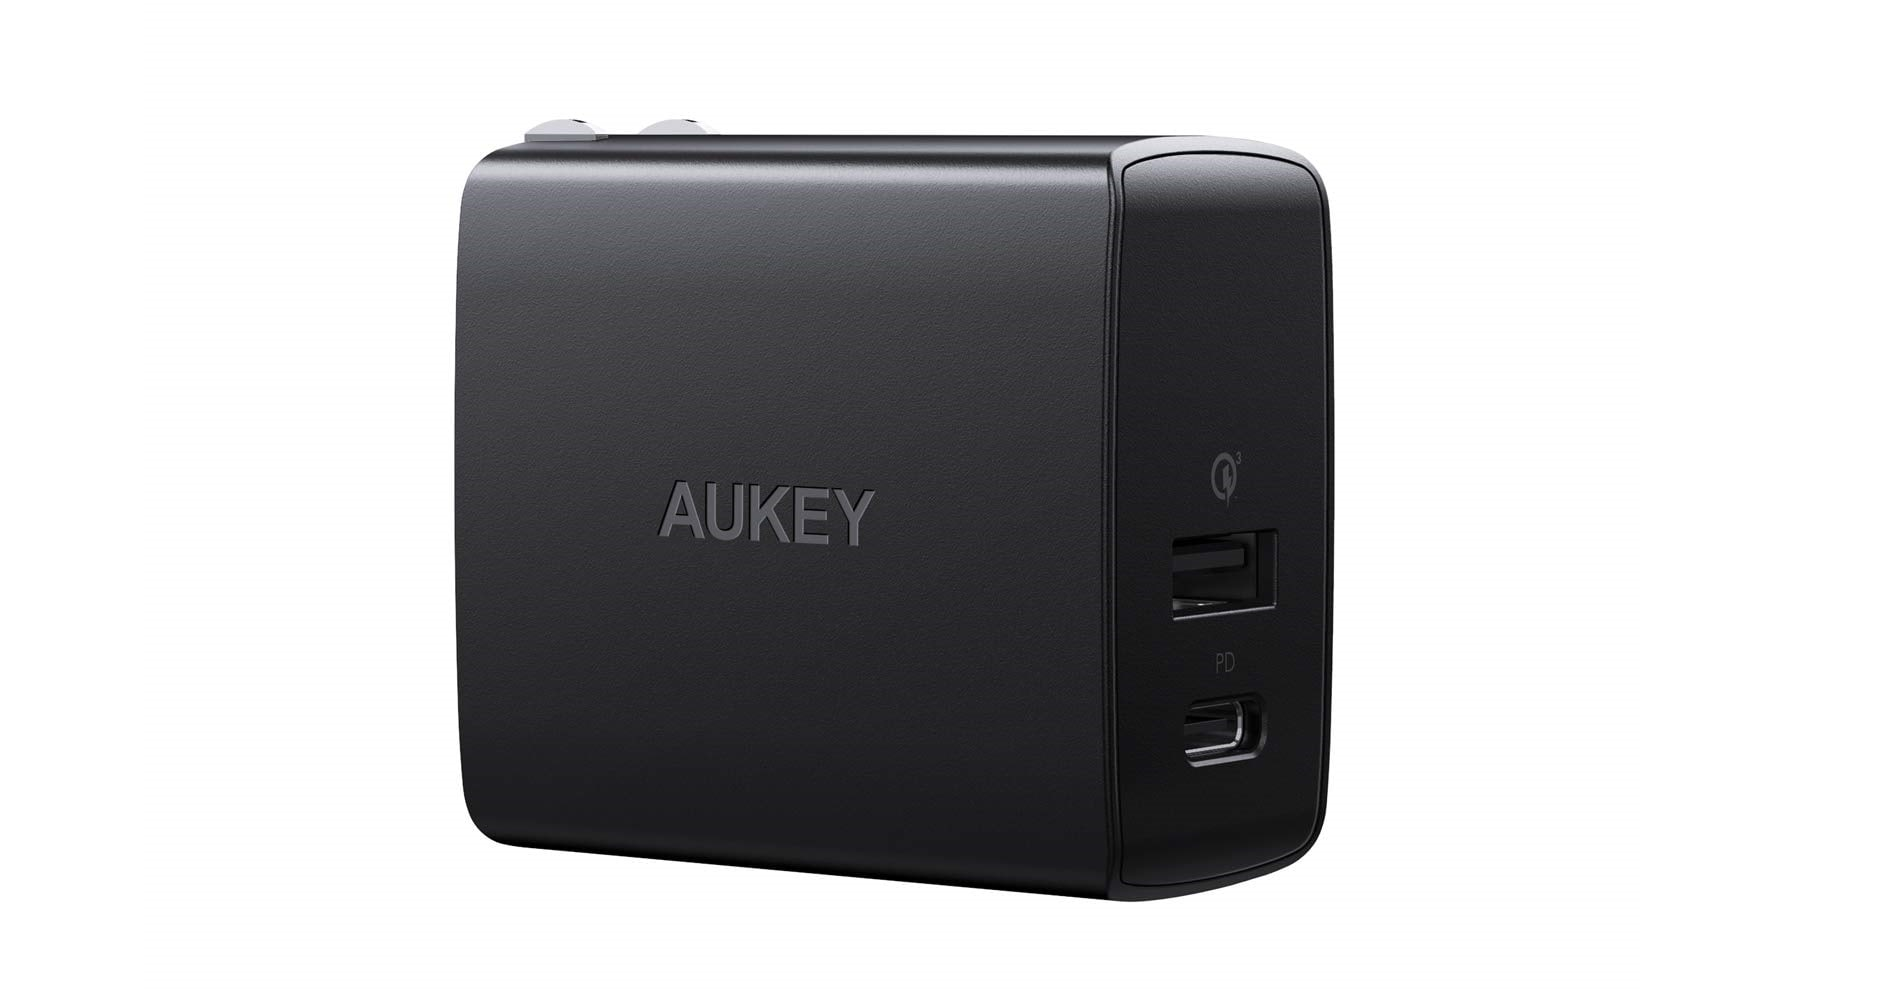 18W Aukey USB Wall Charger